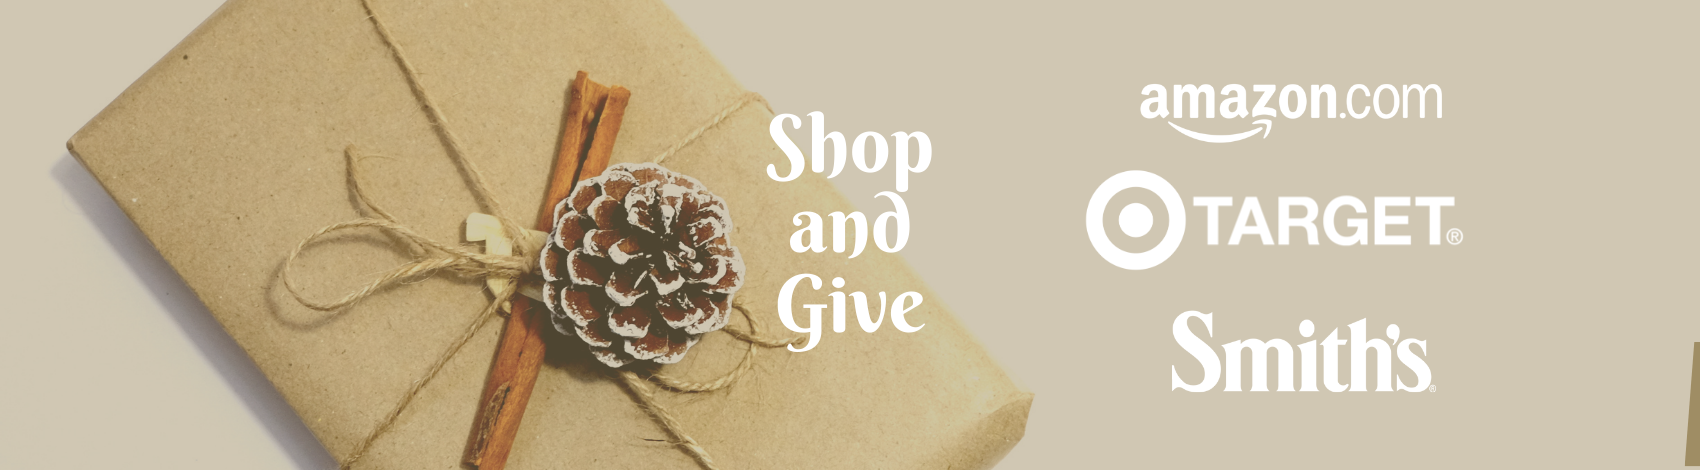 Shop and give today!